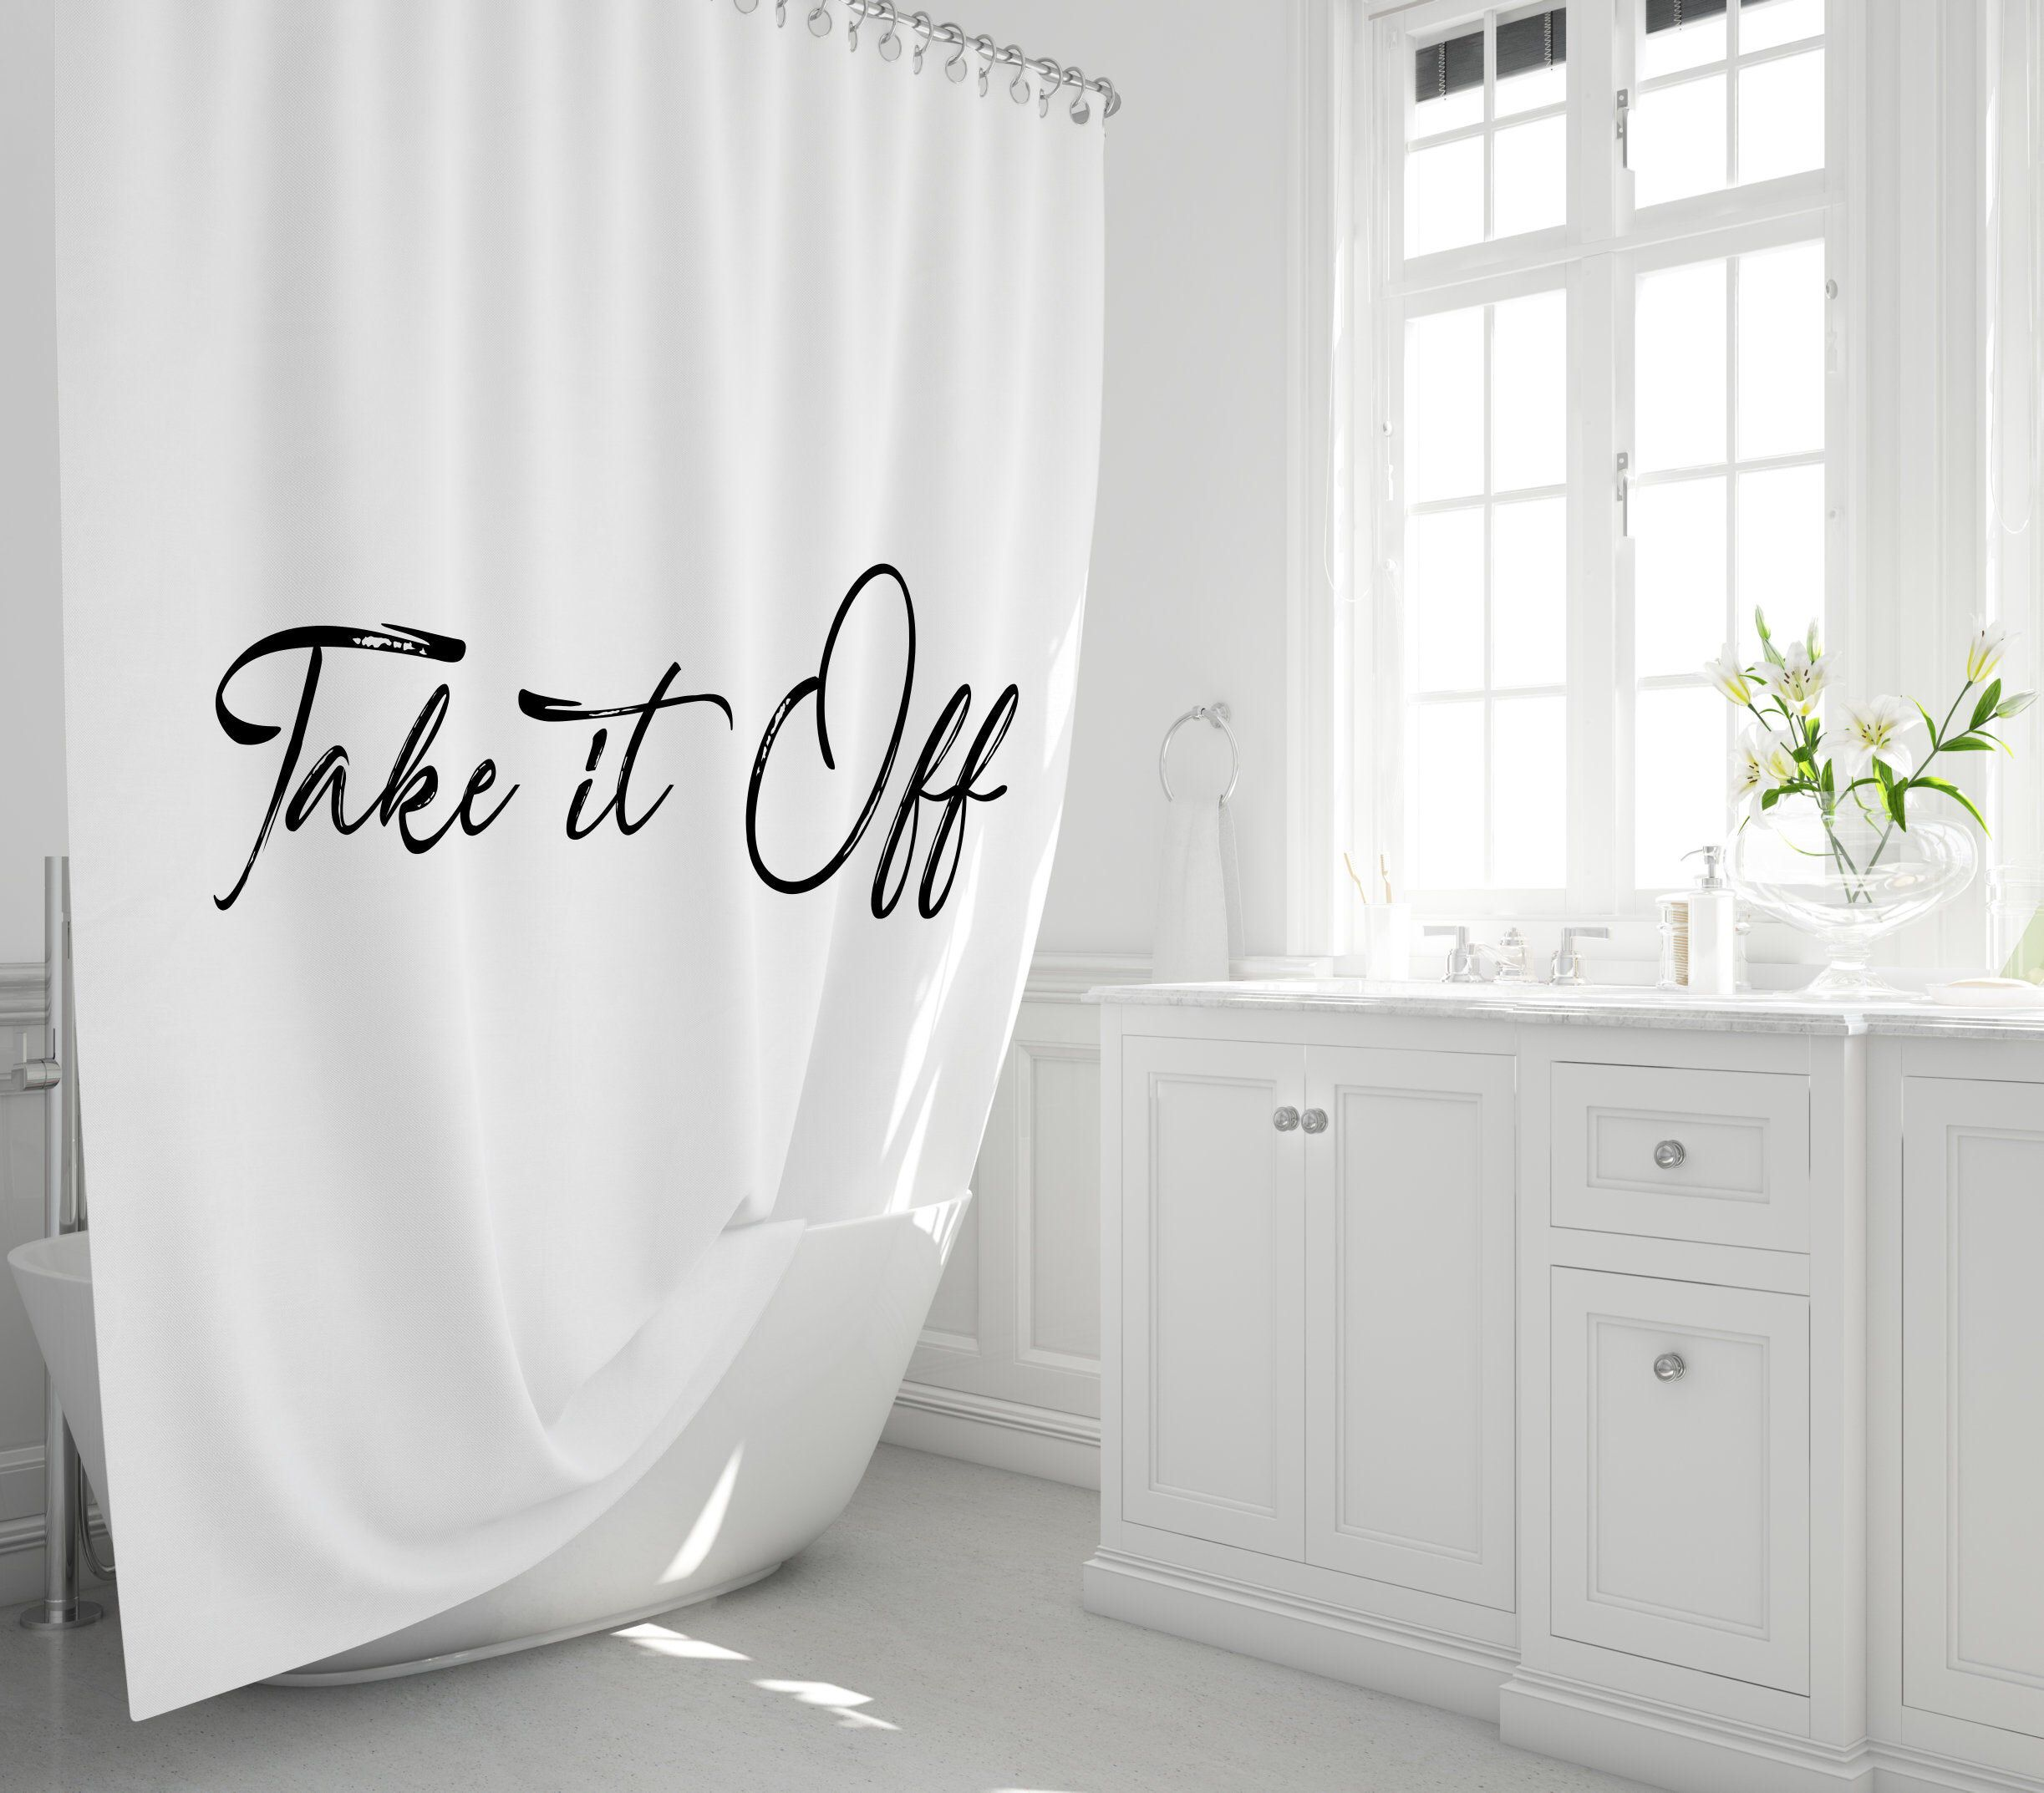 Funny Shower Curtain Take It Off Bath Liner Shower Definition Curtain Funny Quote Linen Shower Curtain Bathroom Gifts In 2020 Shabby Chic Shower Curtain Funny Shower Curtains Shabby Chic Shower